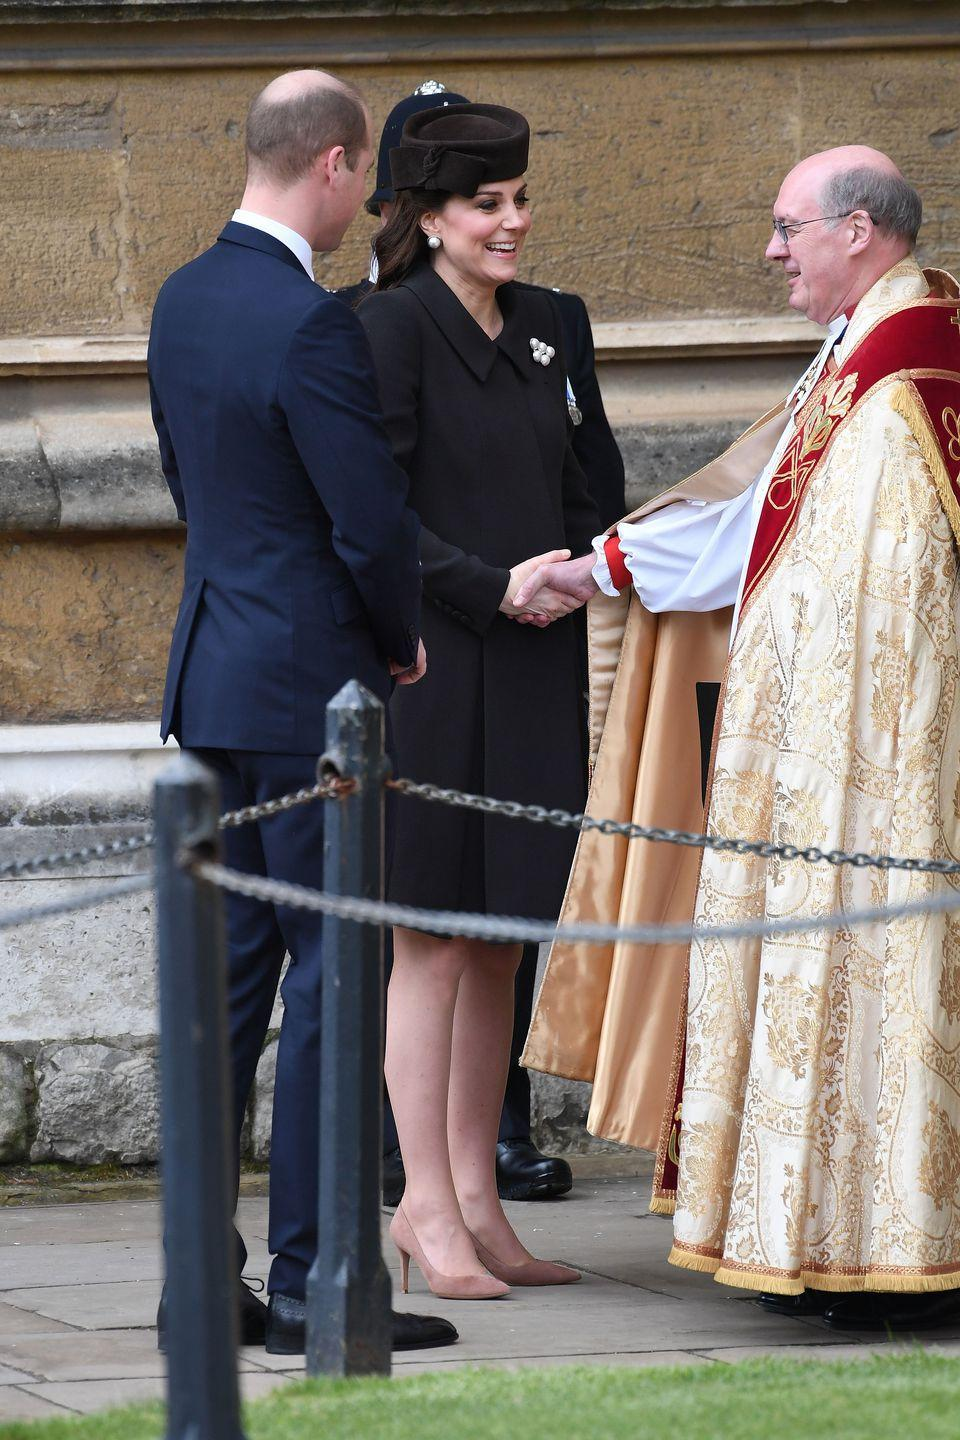 <p>They committed a faux pas and arrived after the Queen to church due to traffic.</p>